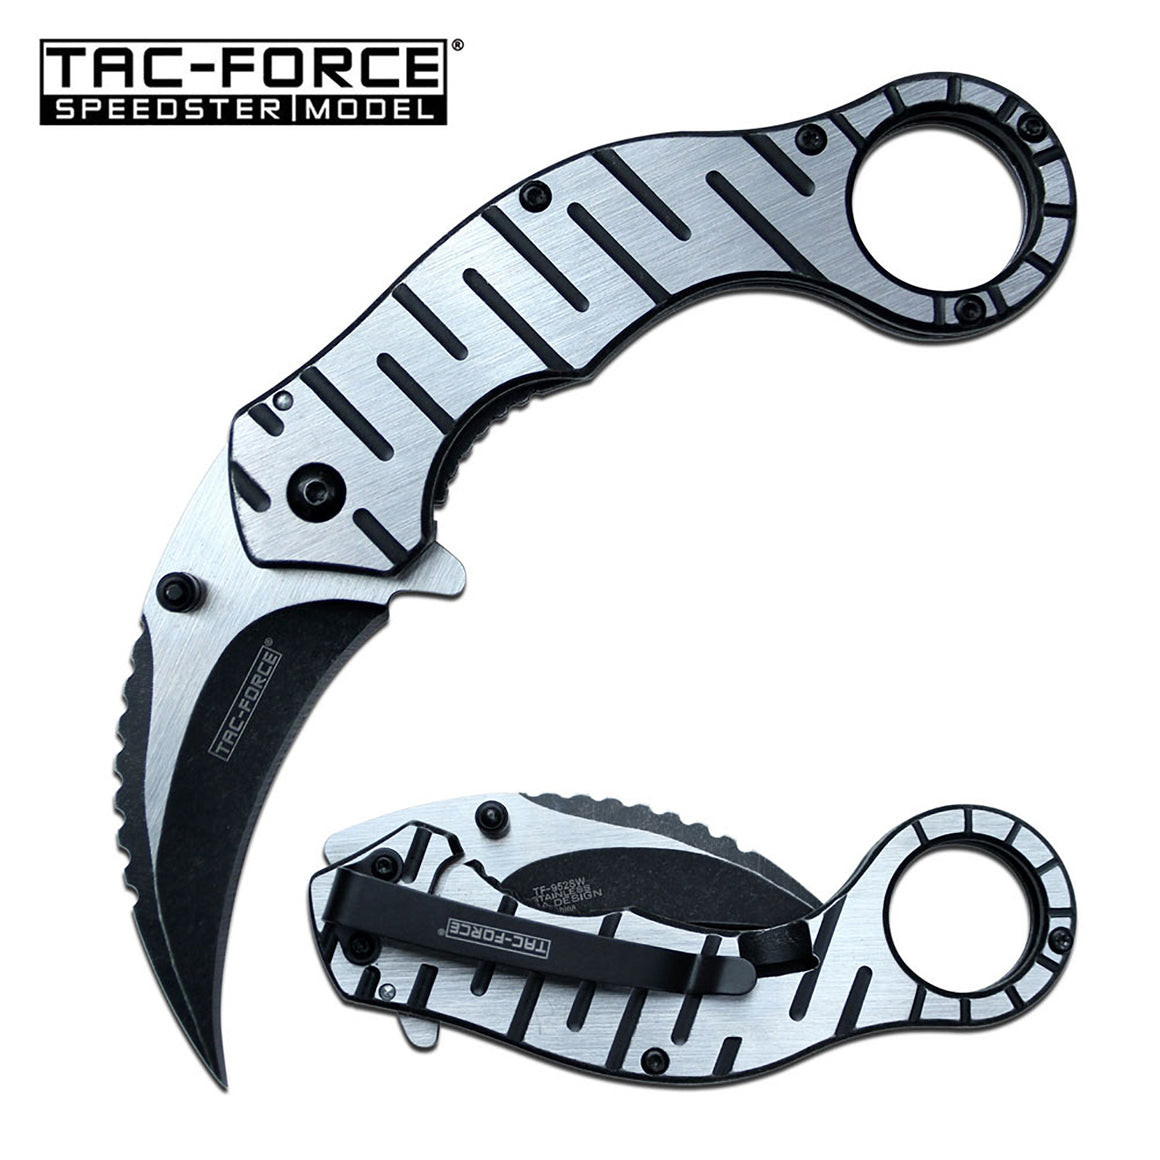 Tac-Force TF-952SW Spring Assisted Knife